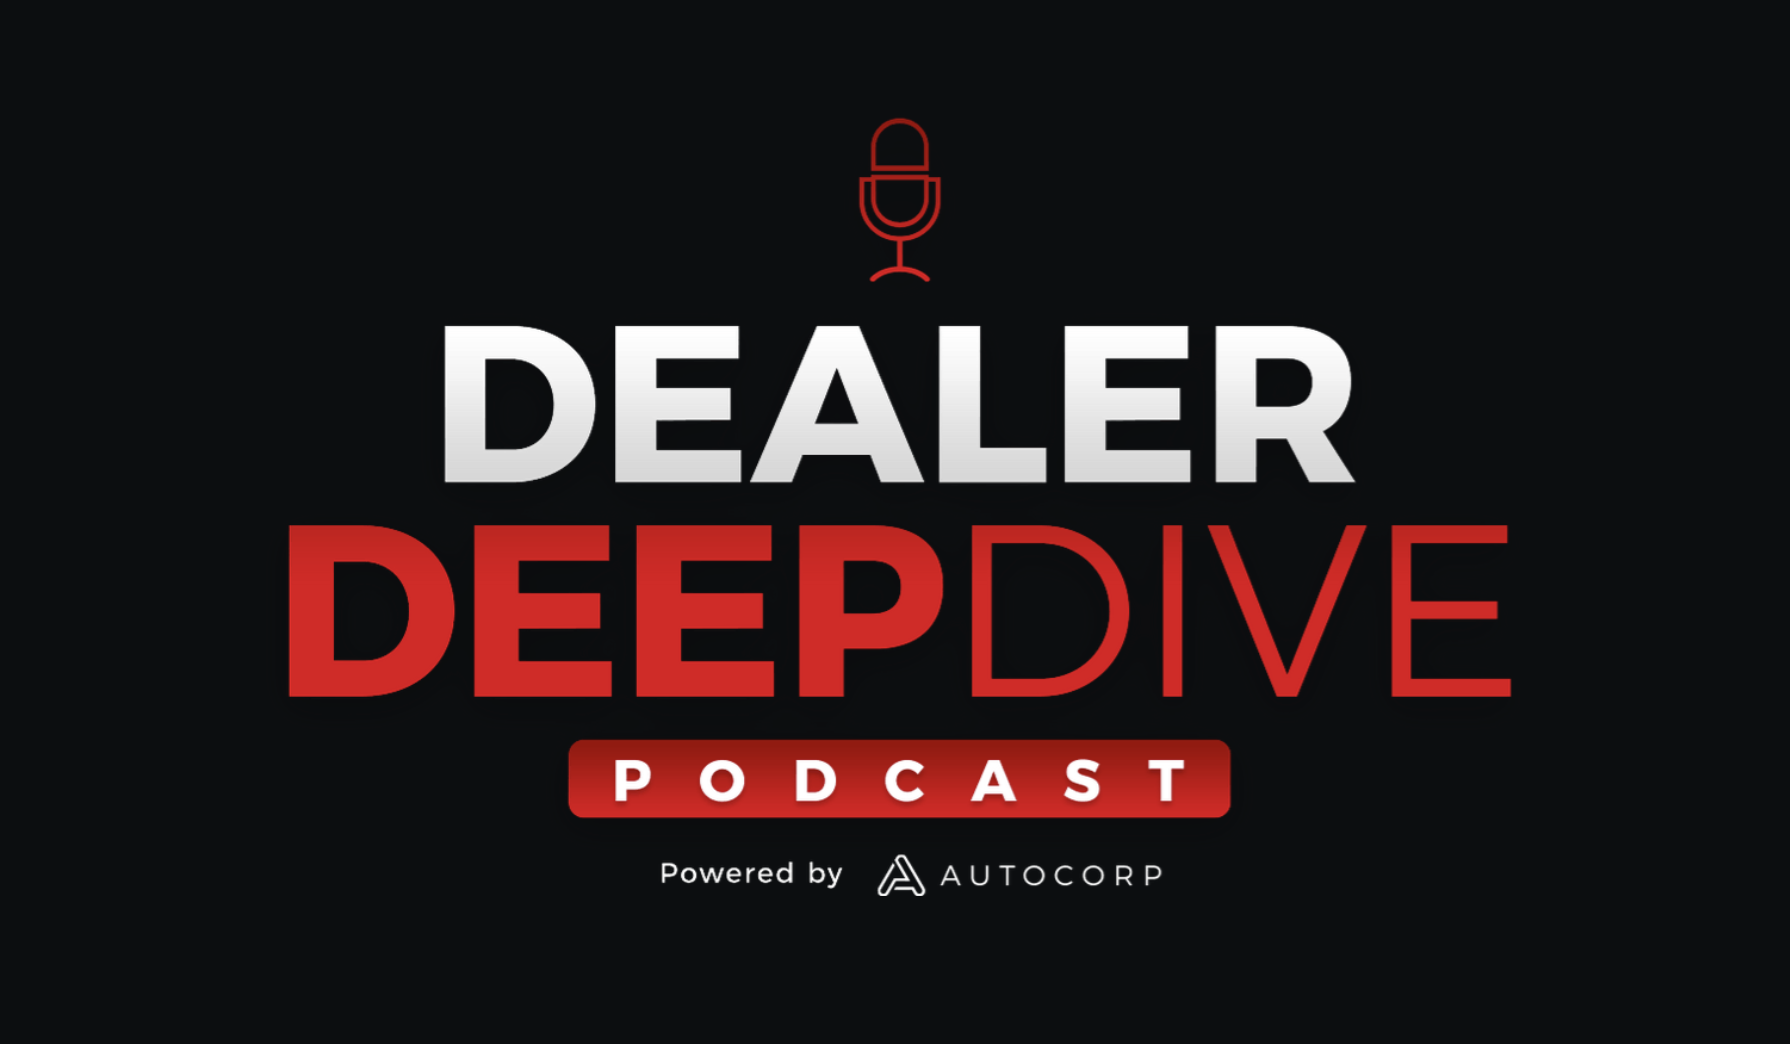 Dealer Deep Dive - #6 | Dee Murphy joining Autocorp, and her Woman in Automotive talk